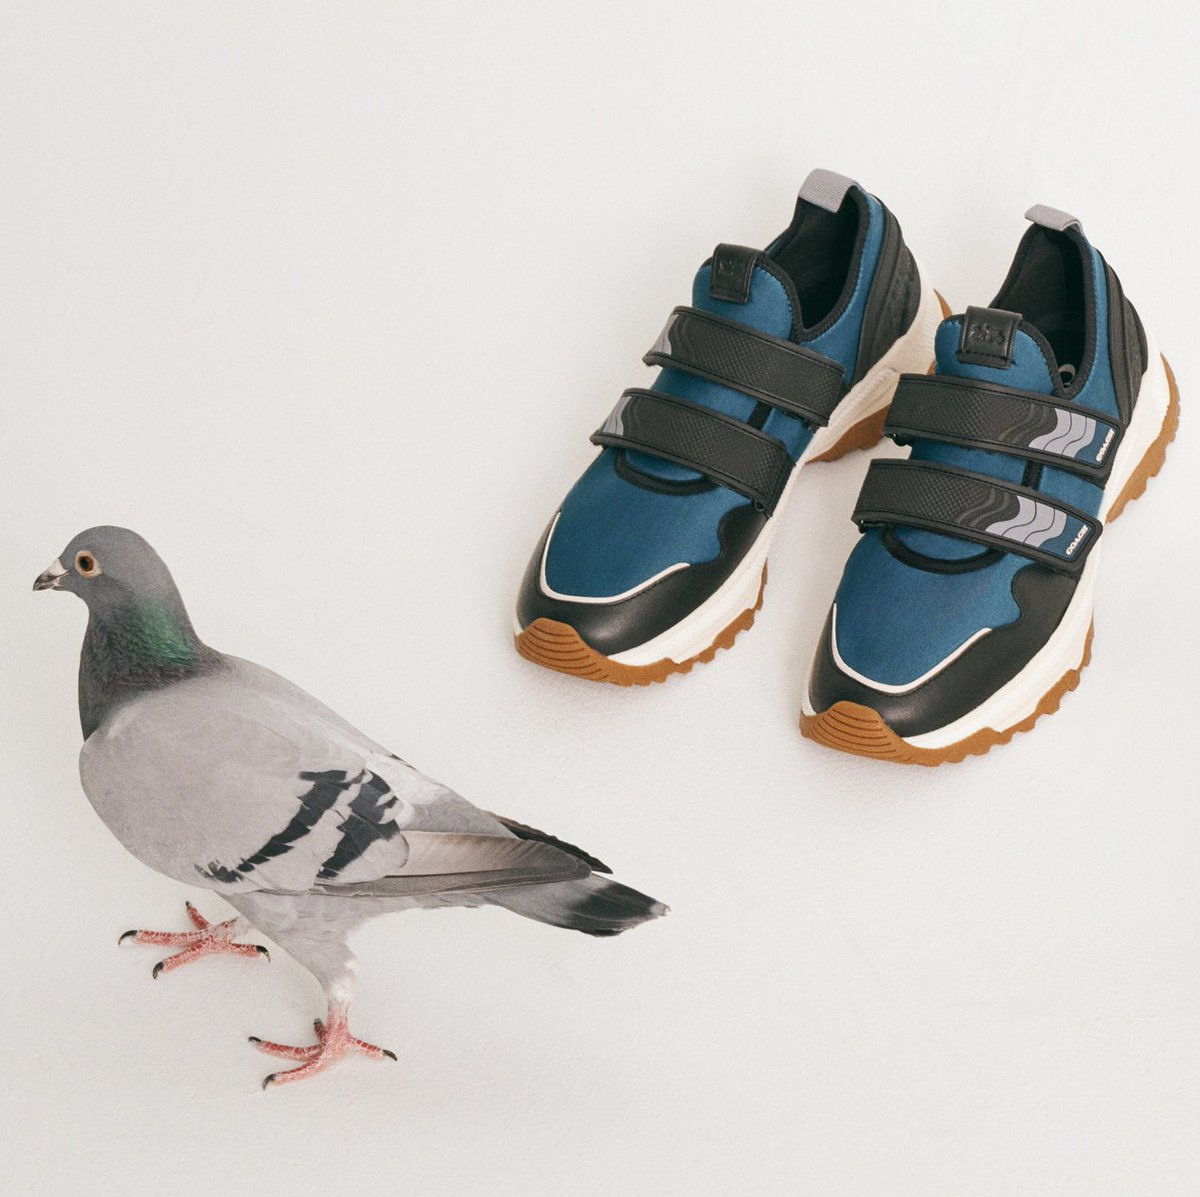 Go toe-to-toe with the local wildlife in our C143 Two Strap Runner. http://on.coach.com/NewSneakers #CoachNY